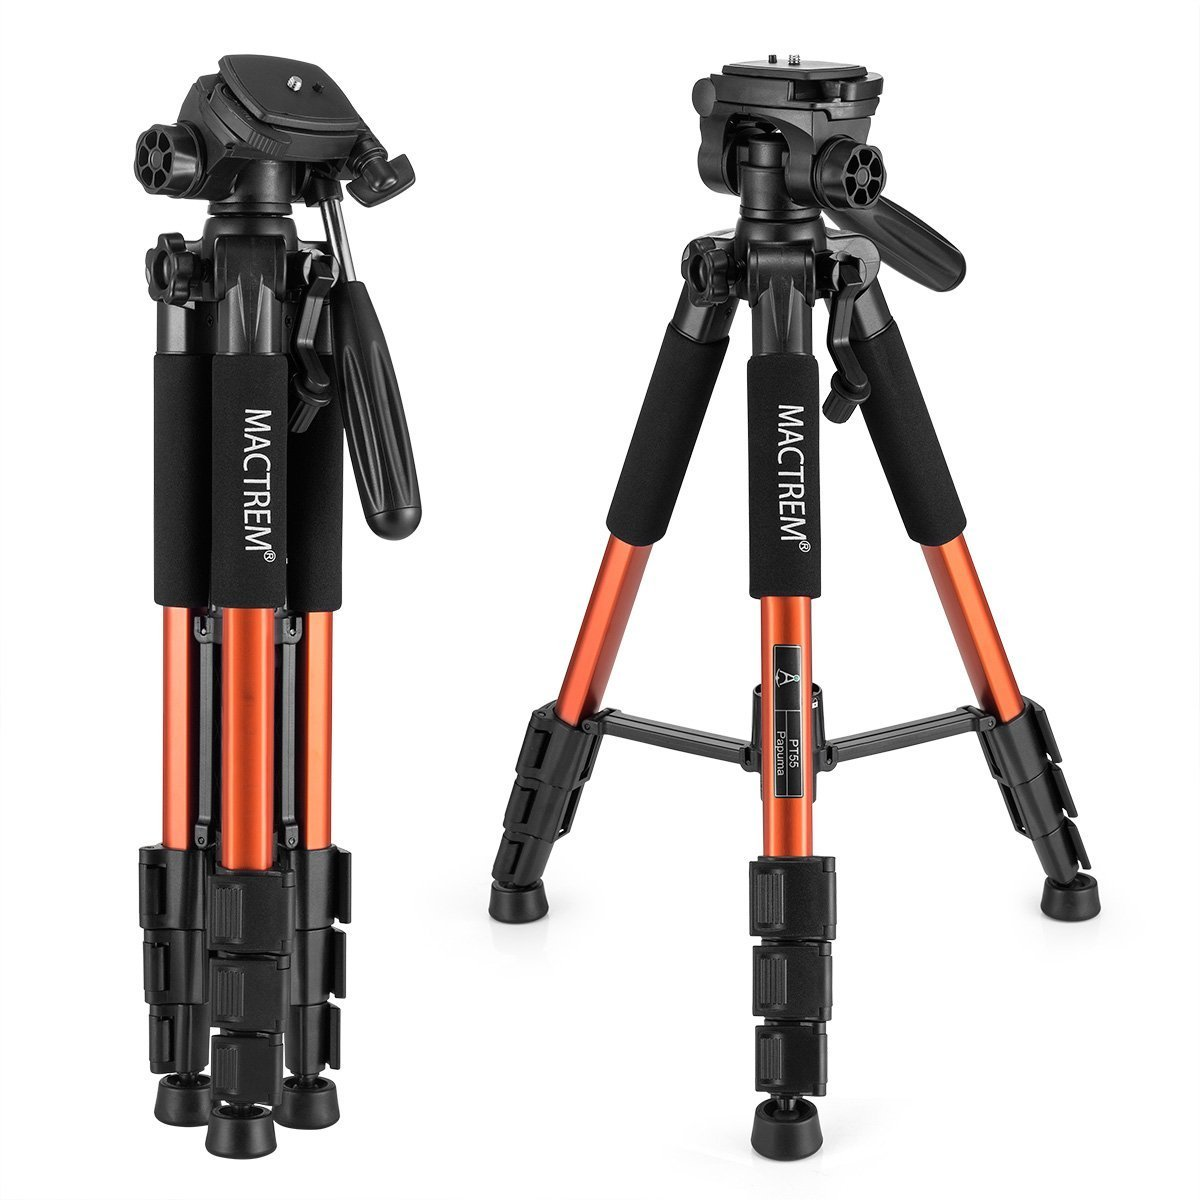 Camera Tripod Lightweight Portable Travel Tripod Aluminum Camcorder Stand MACTREM 55-Inch with Bag for DSLR Nikon Canon Sony Olympus Fuji Pentax Lumix DV Video (Orange)